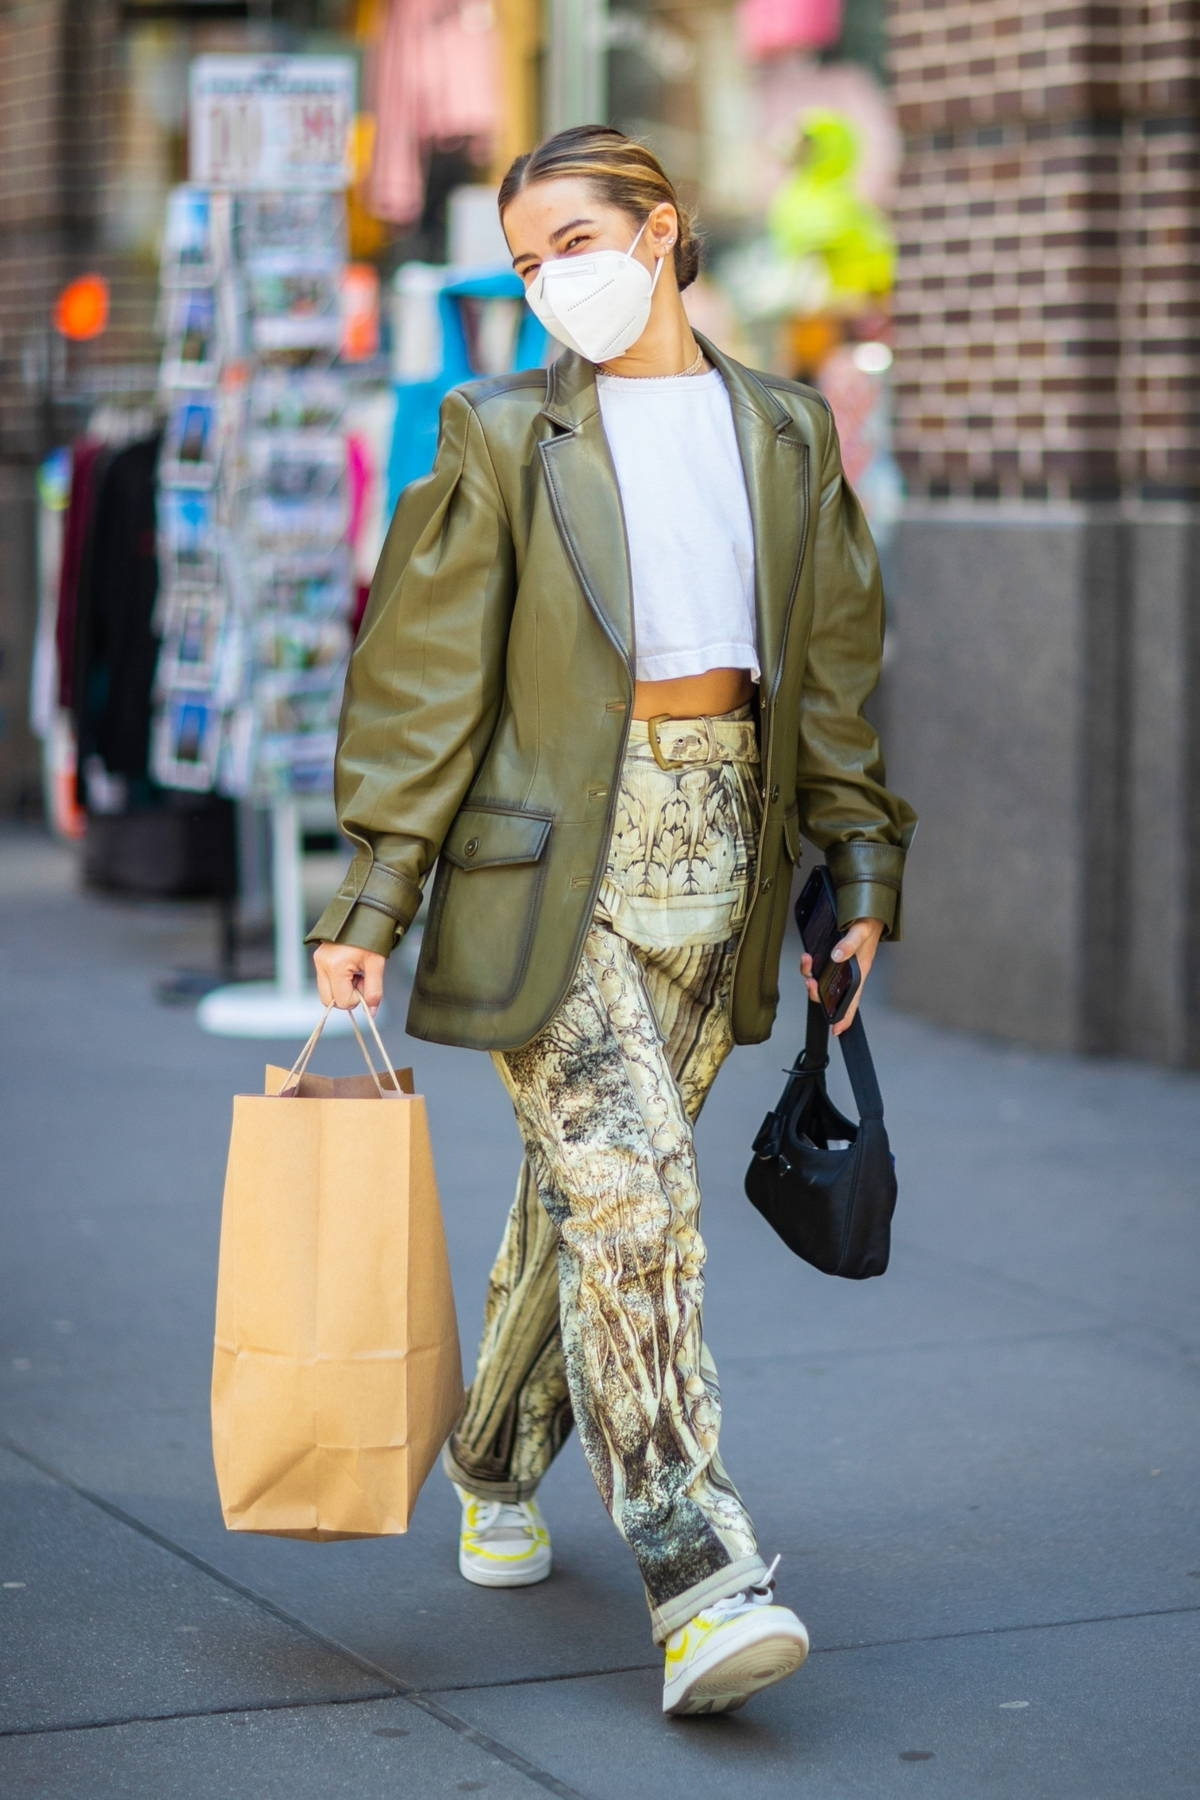 Addison Rae looks trendy in a green leather jacket and patterned pants while out for some shopping in New York City